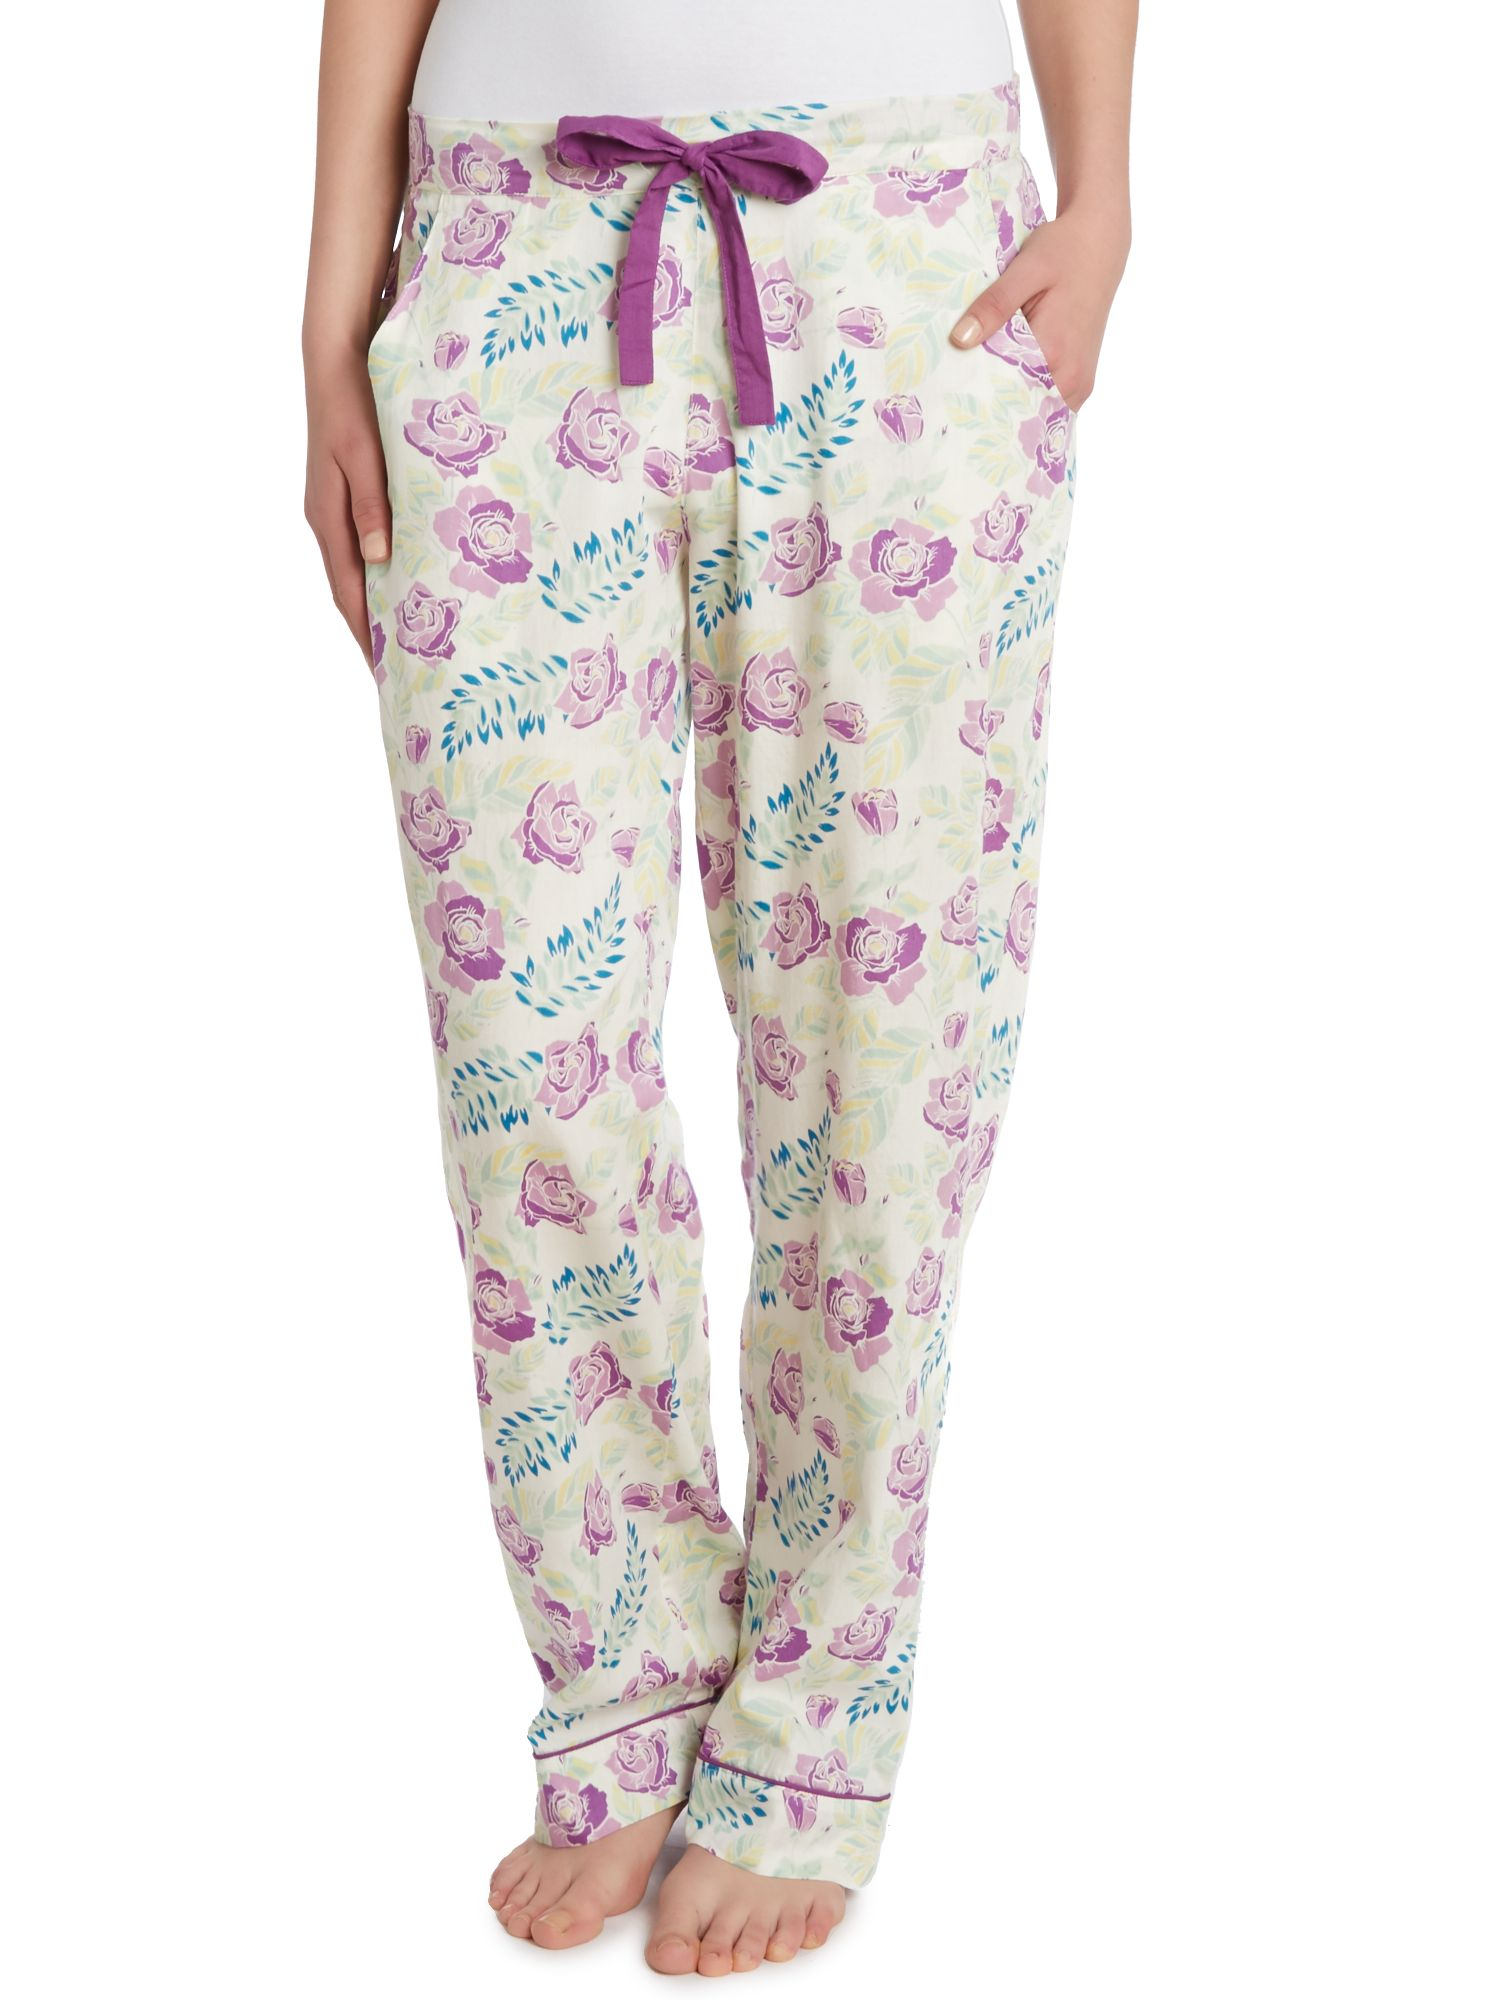 Evelyn vintage floral pj trouser